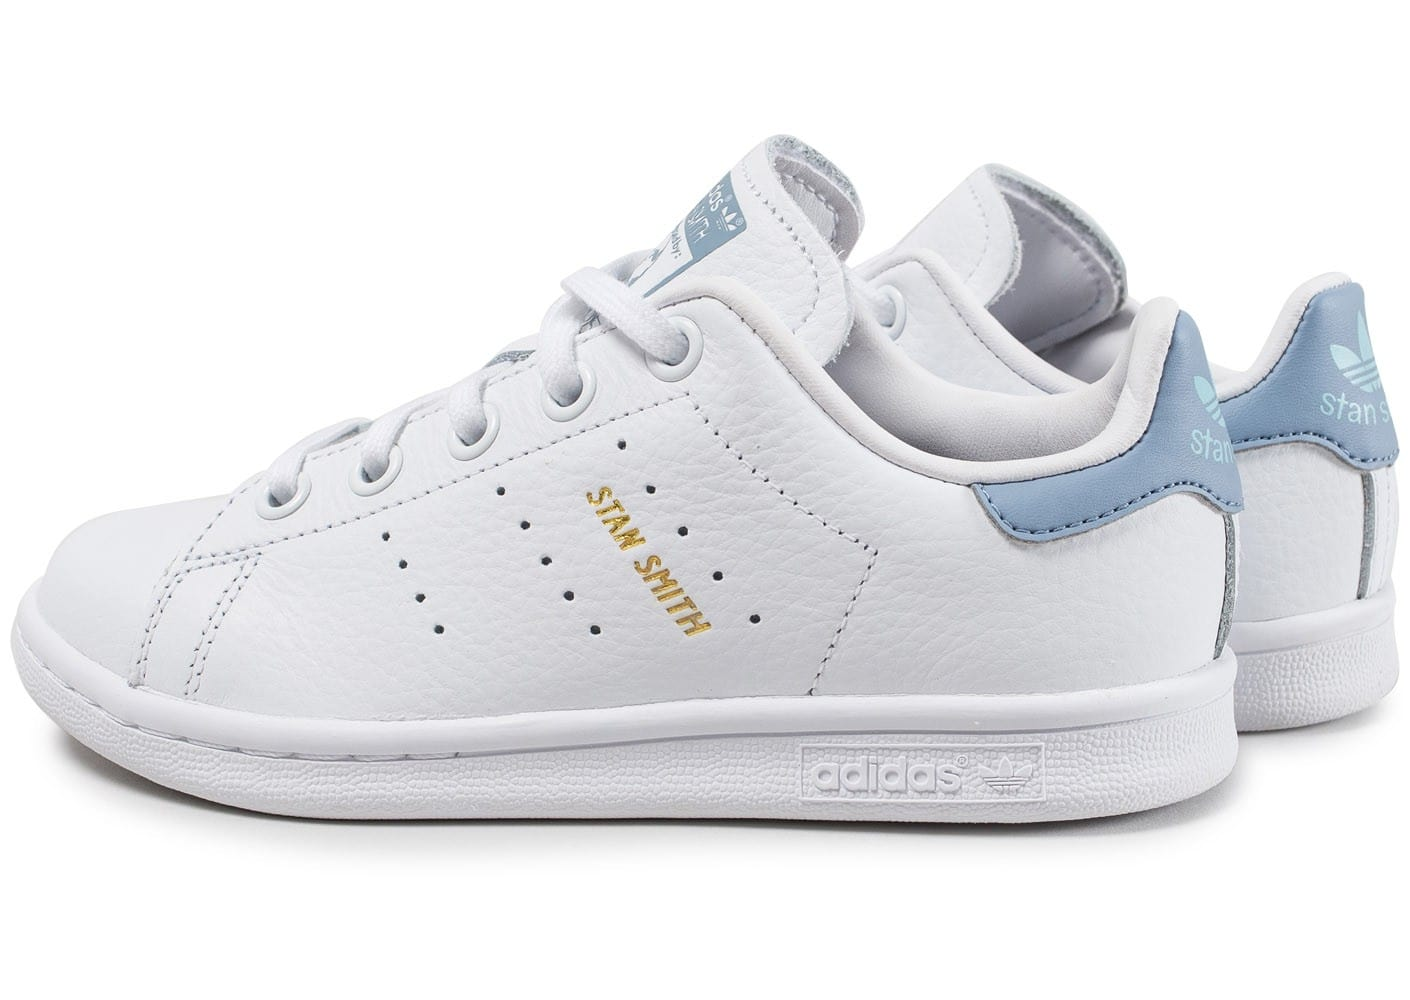 stan smith toutes blanches stan smith enfant a lacet